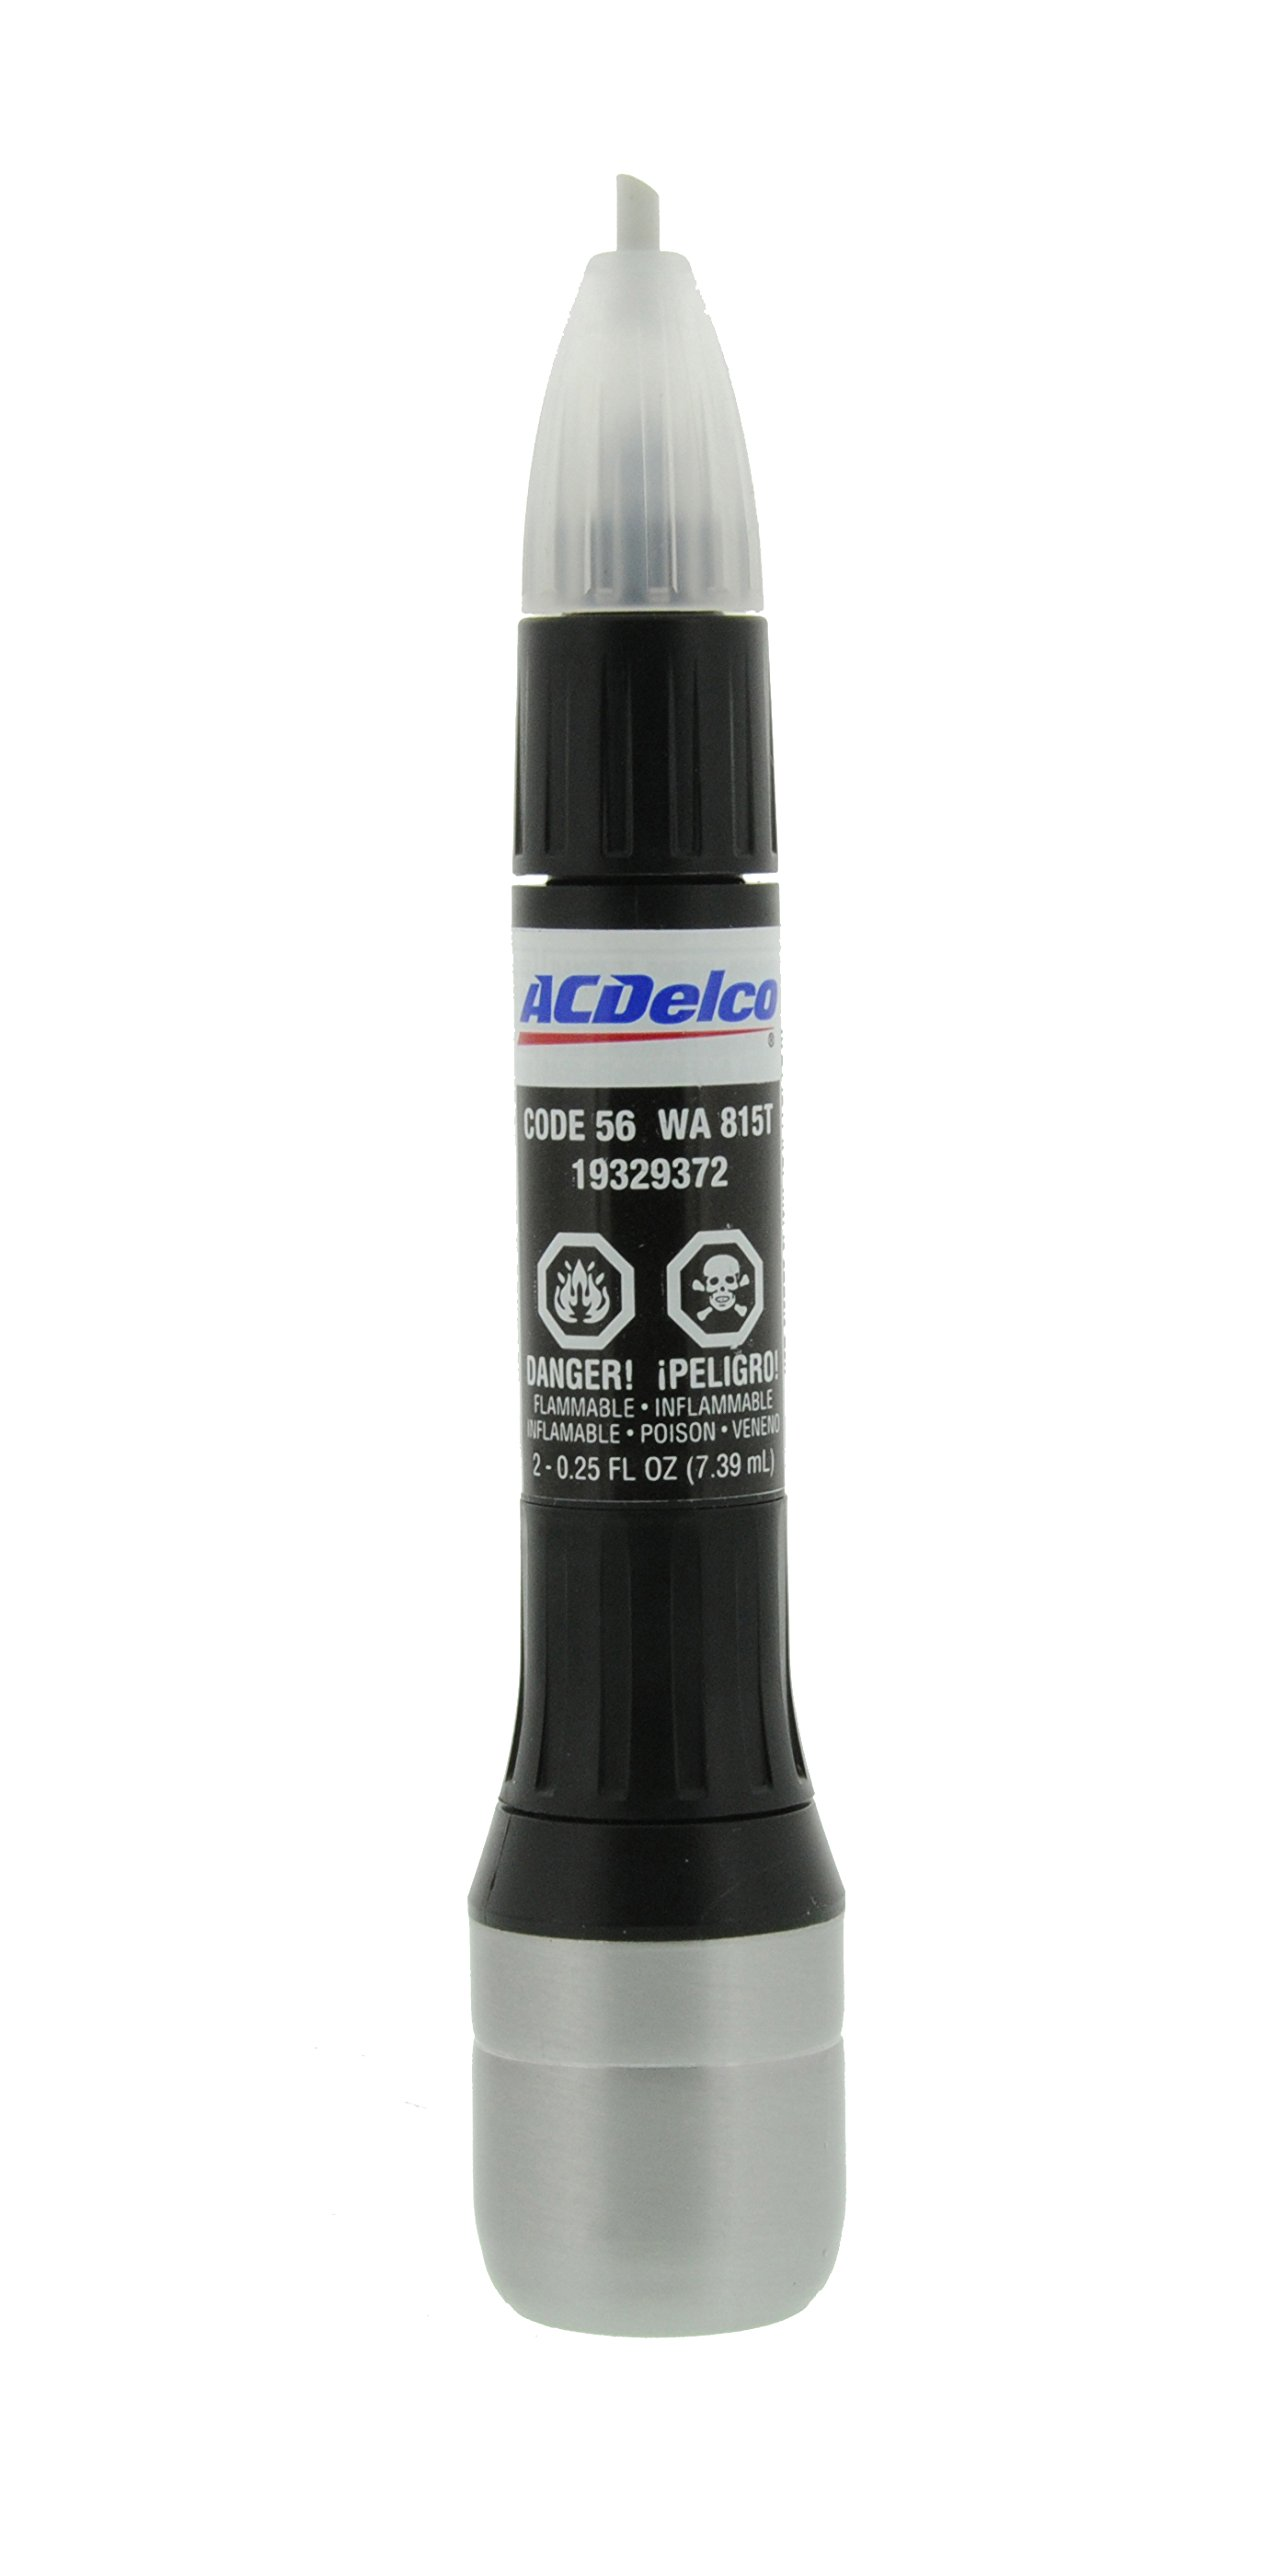 ACDelco 19329372 Black Diamond Tricoat (WA815T) Four-In-One Touch-Up Paint - .5 oz Pen